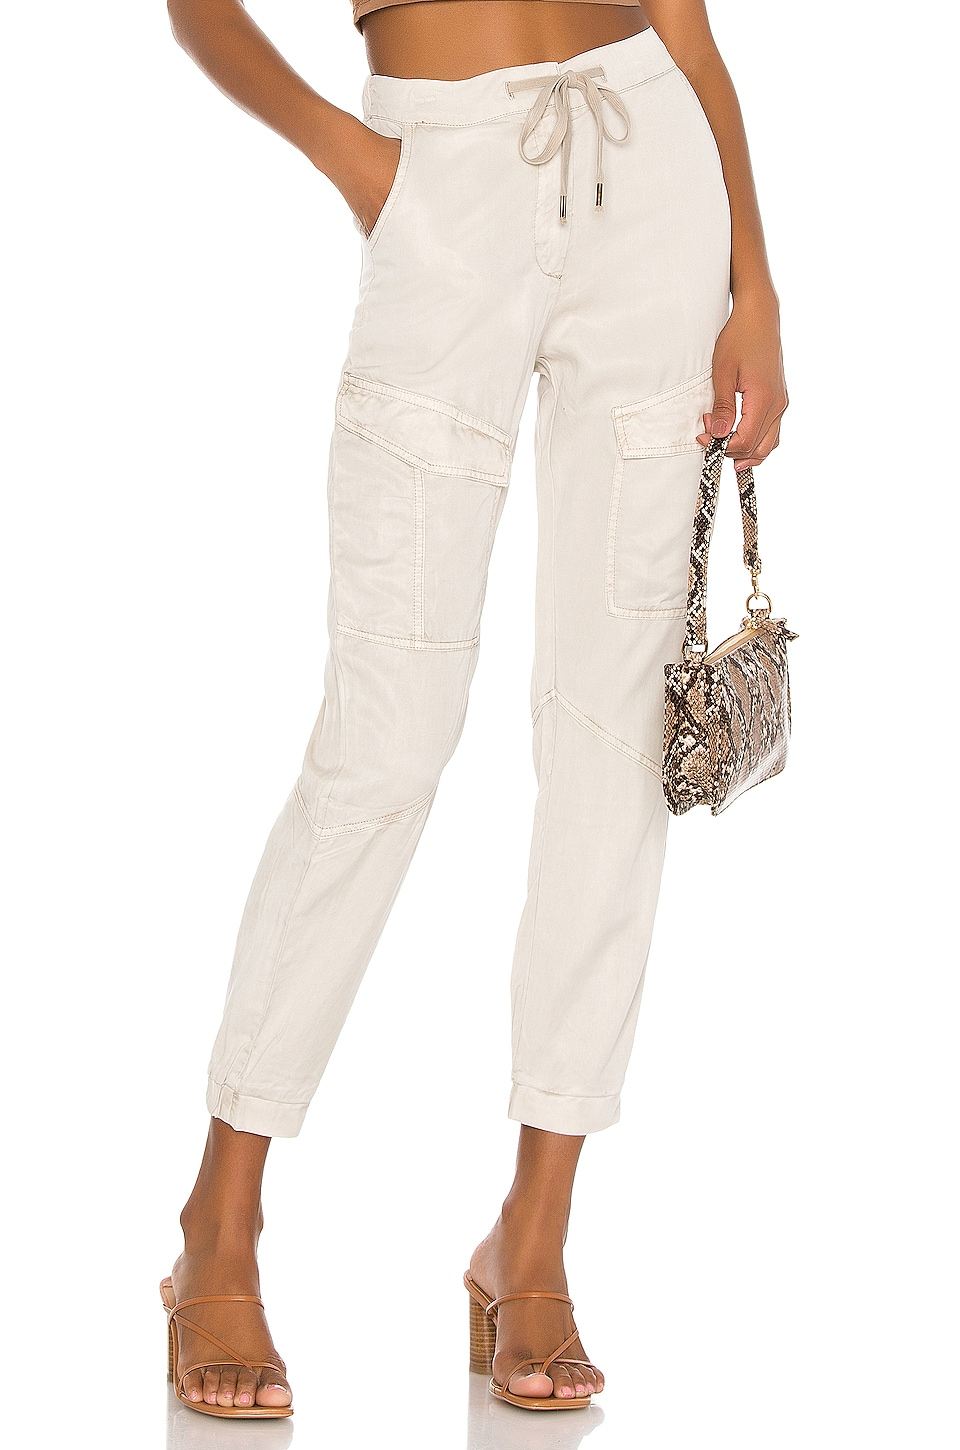 YFB CLOTHING Harrisson Pant in Ash Pigment